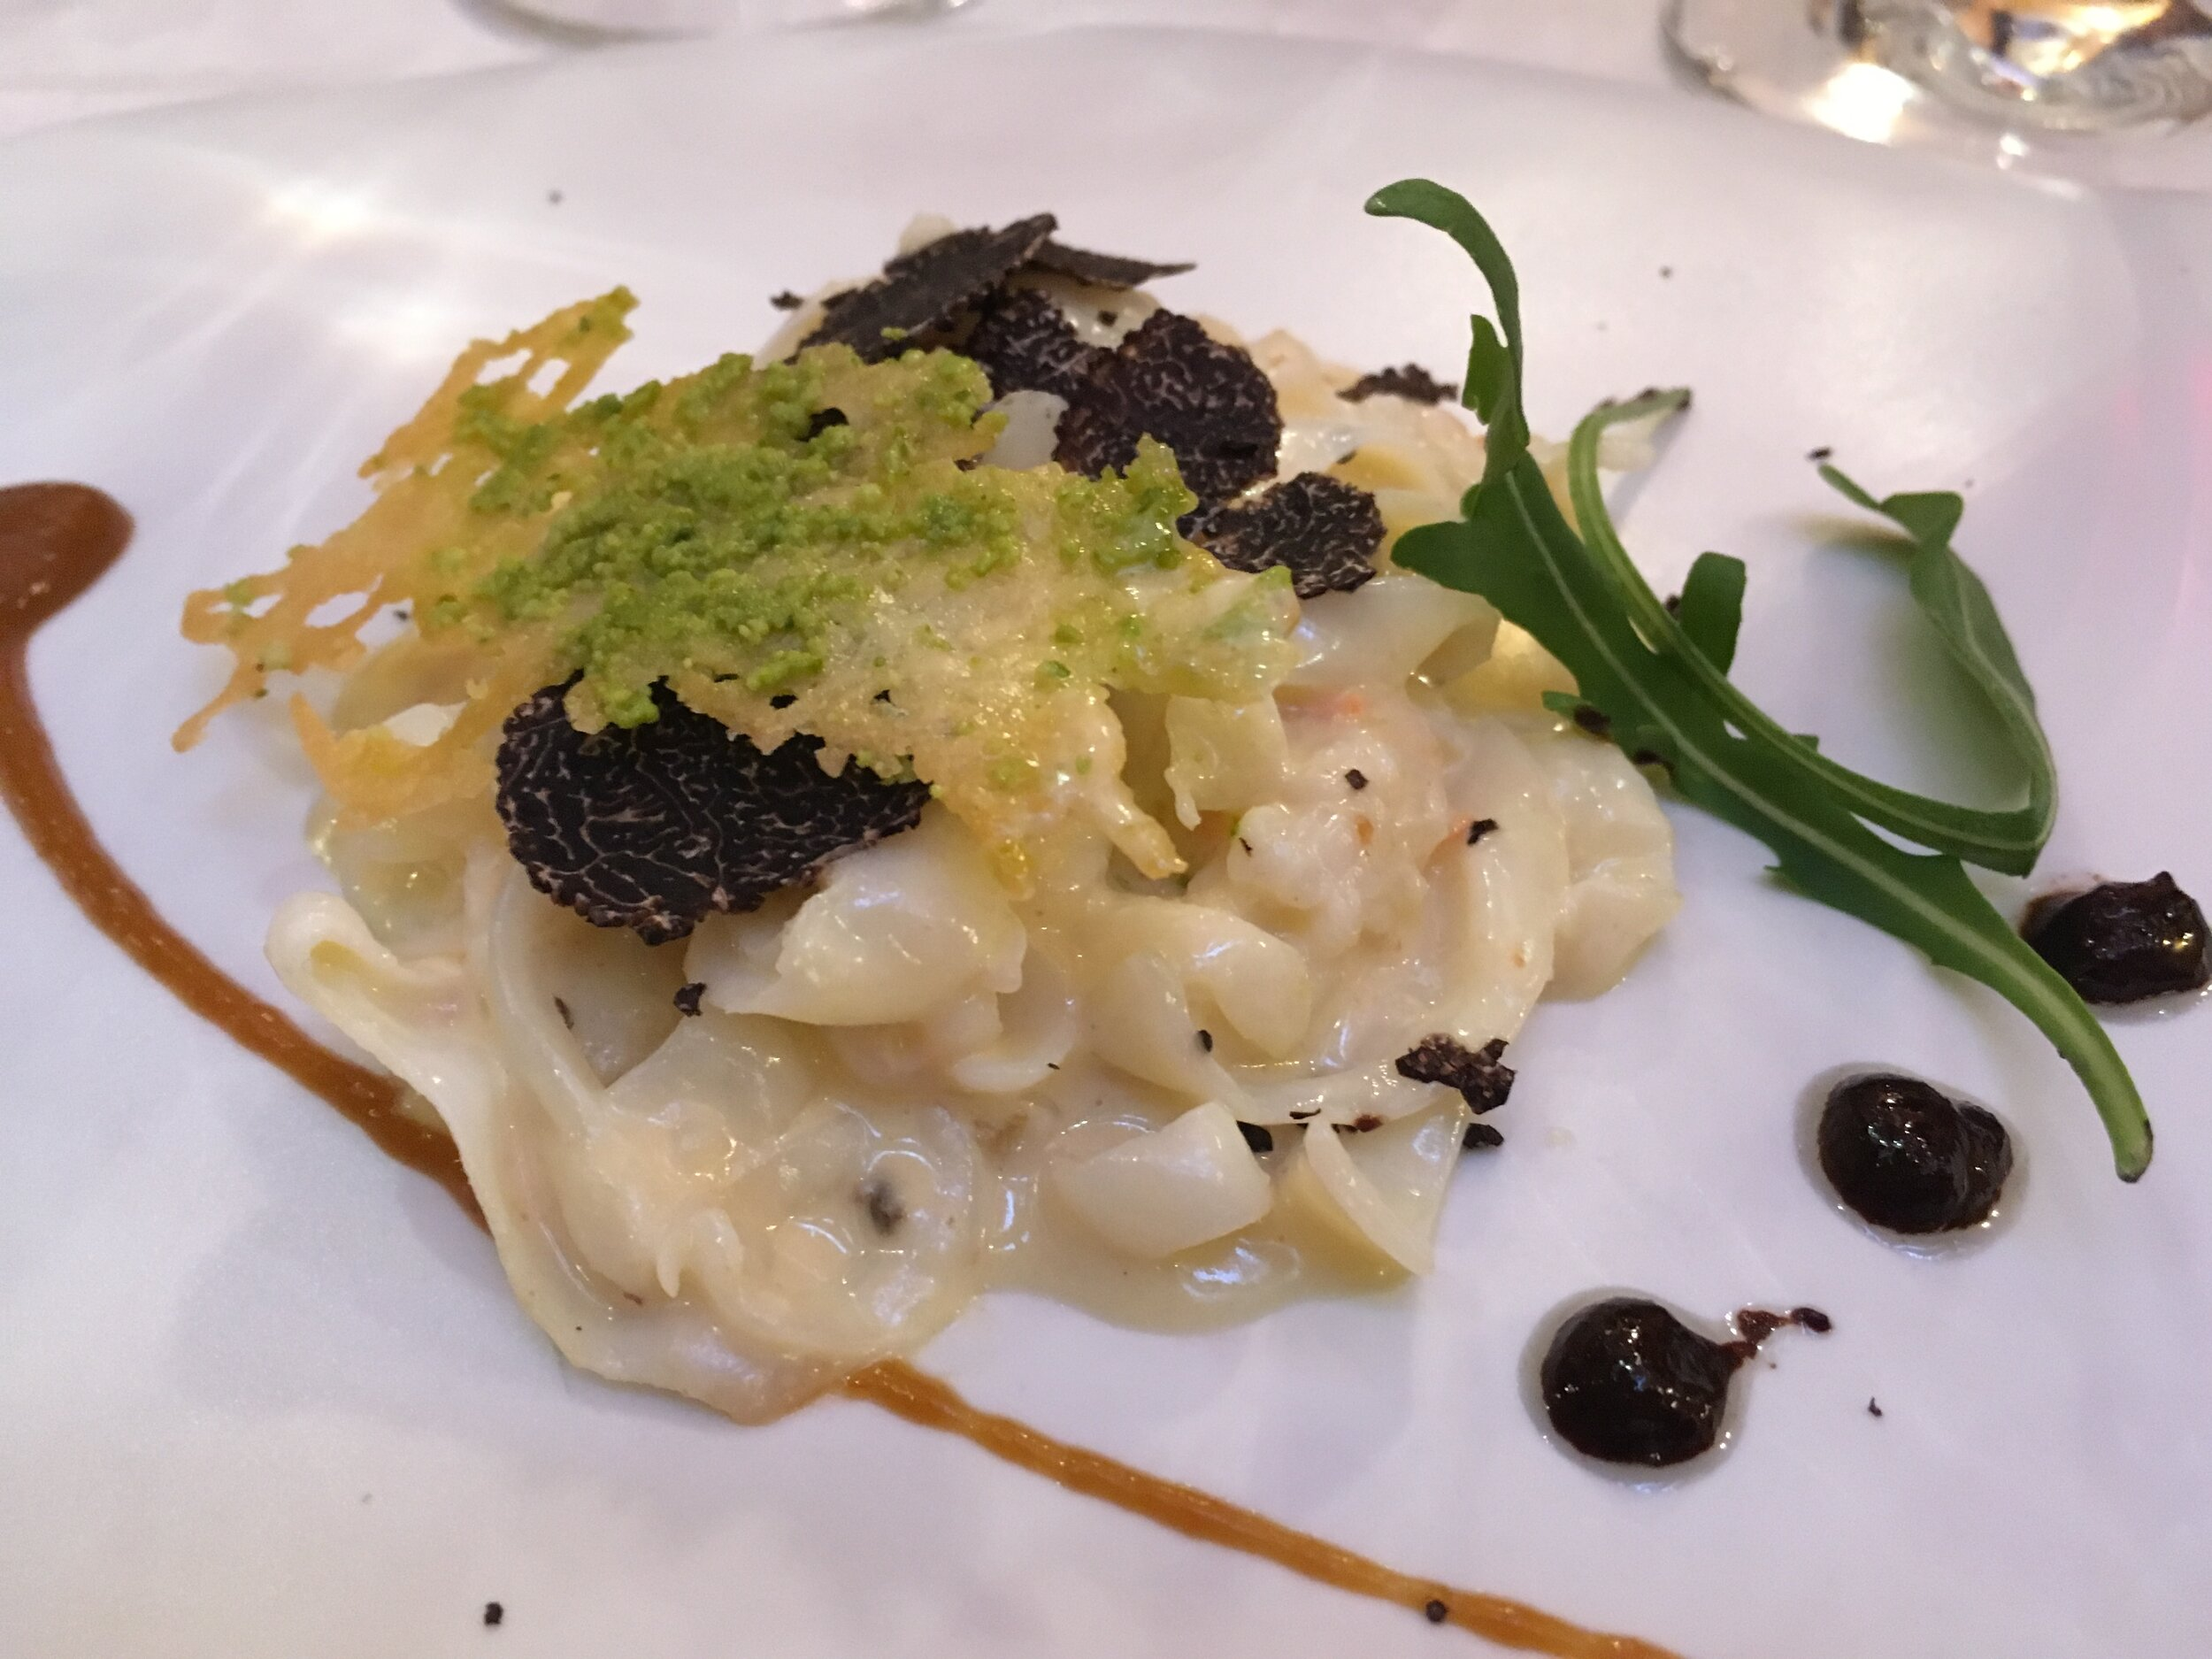 Enjoy truffle cuisine highlighted in the rich culinary traditions of Castille and Leon.